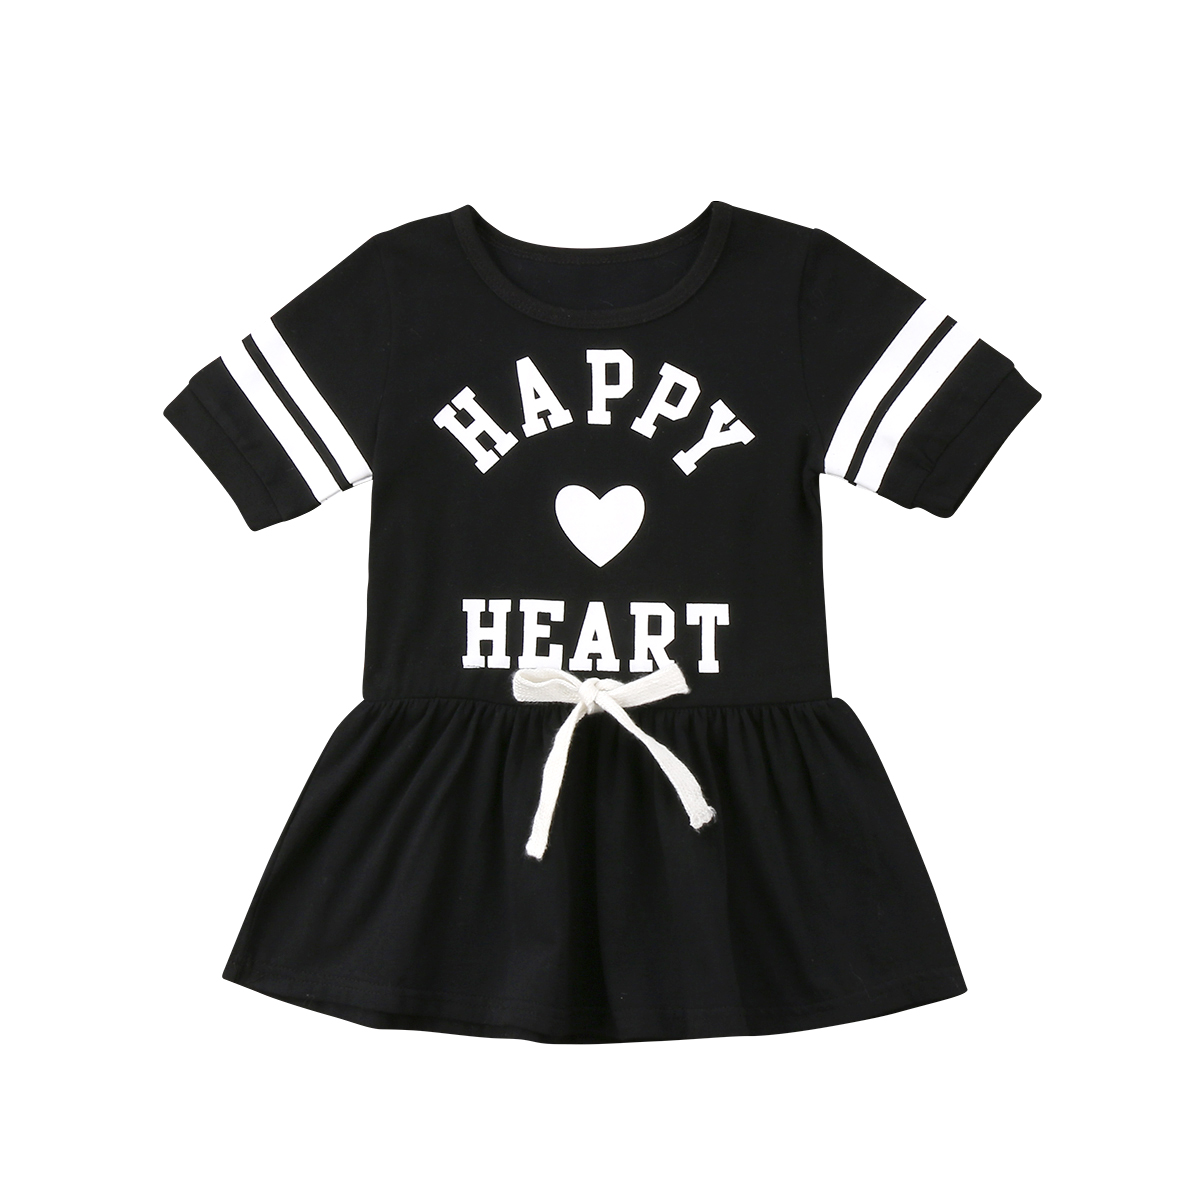 ade0ad22258 Detail Feedback Questions about Fashion Toddler Kids Baby Girls Short Sleeve  O neck Cotton School Style Tunic Printed Party Dress Sundress on  Aliexpress.com ...